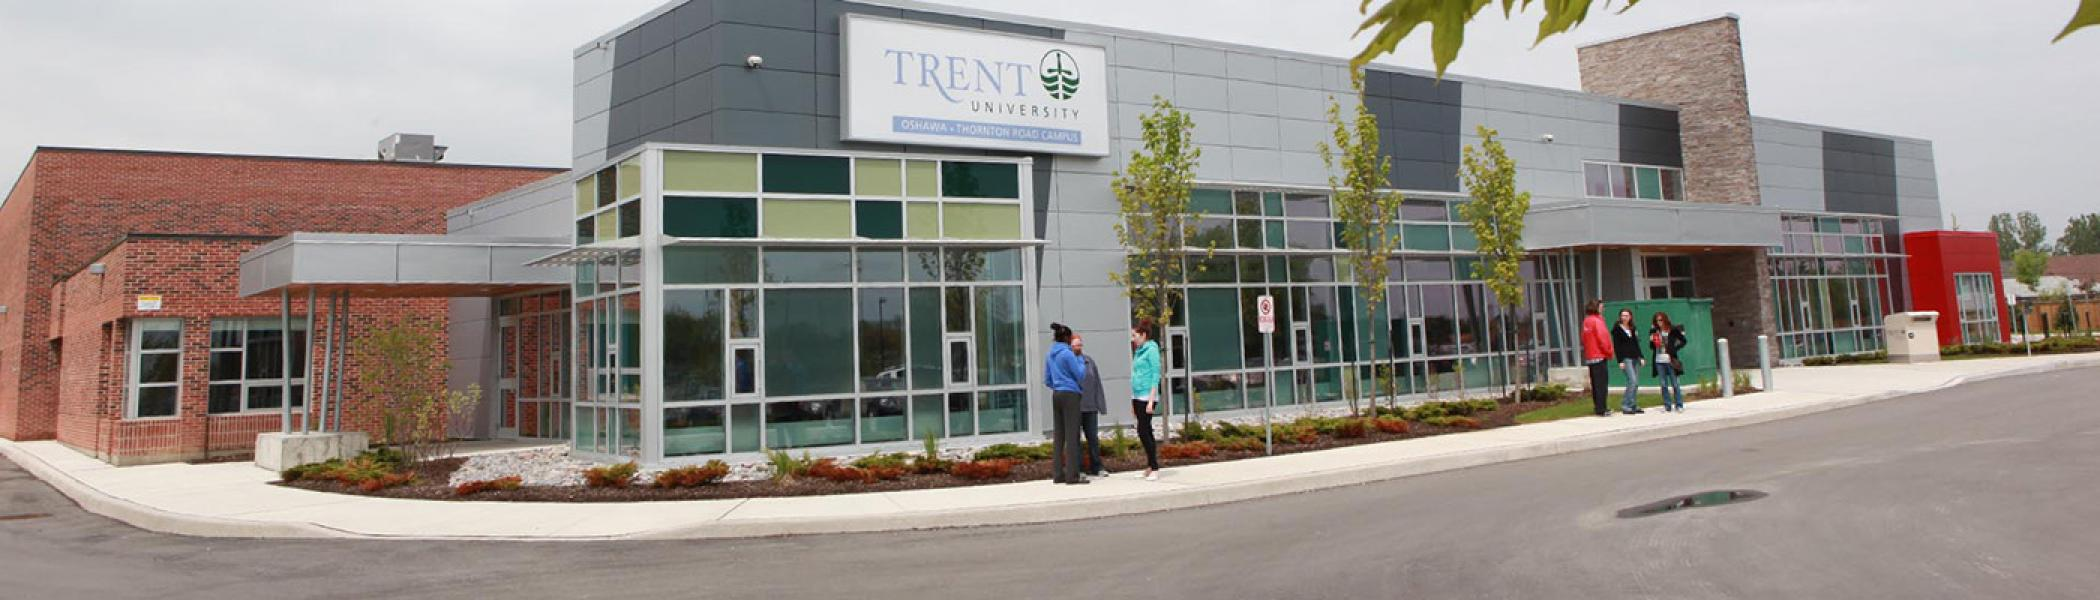 Two groups of students are standing near the Trent University Durham entrance.